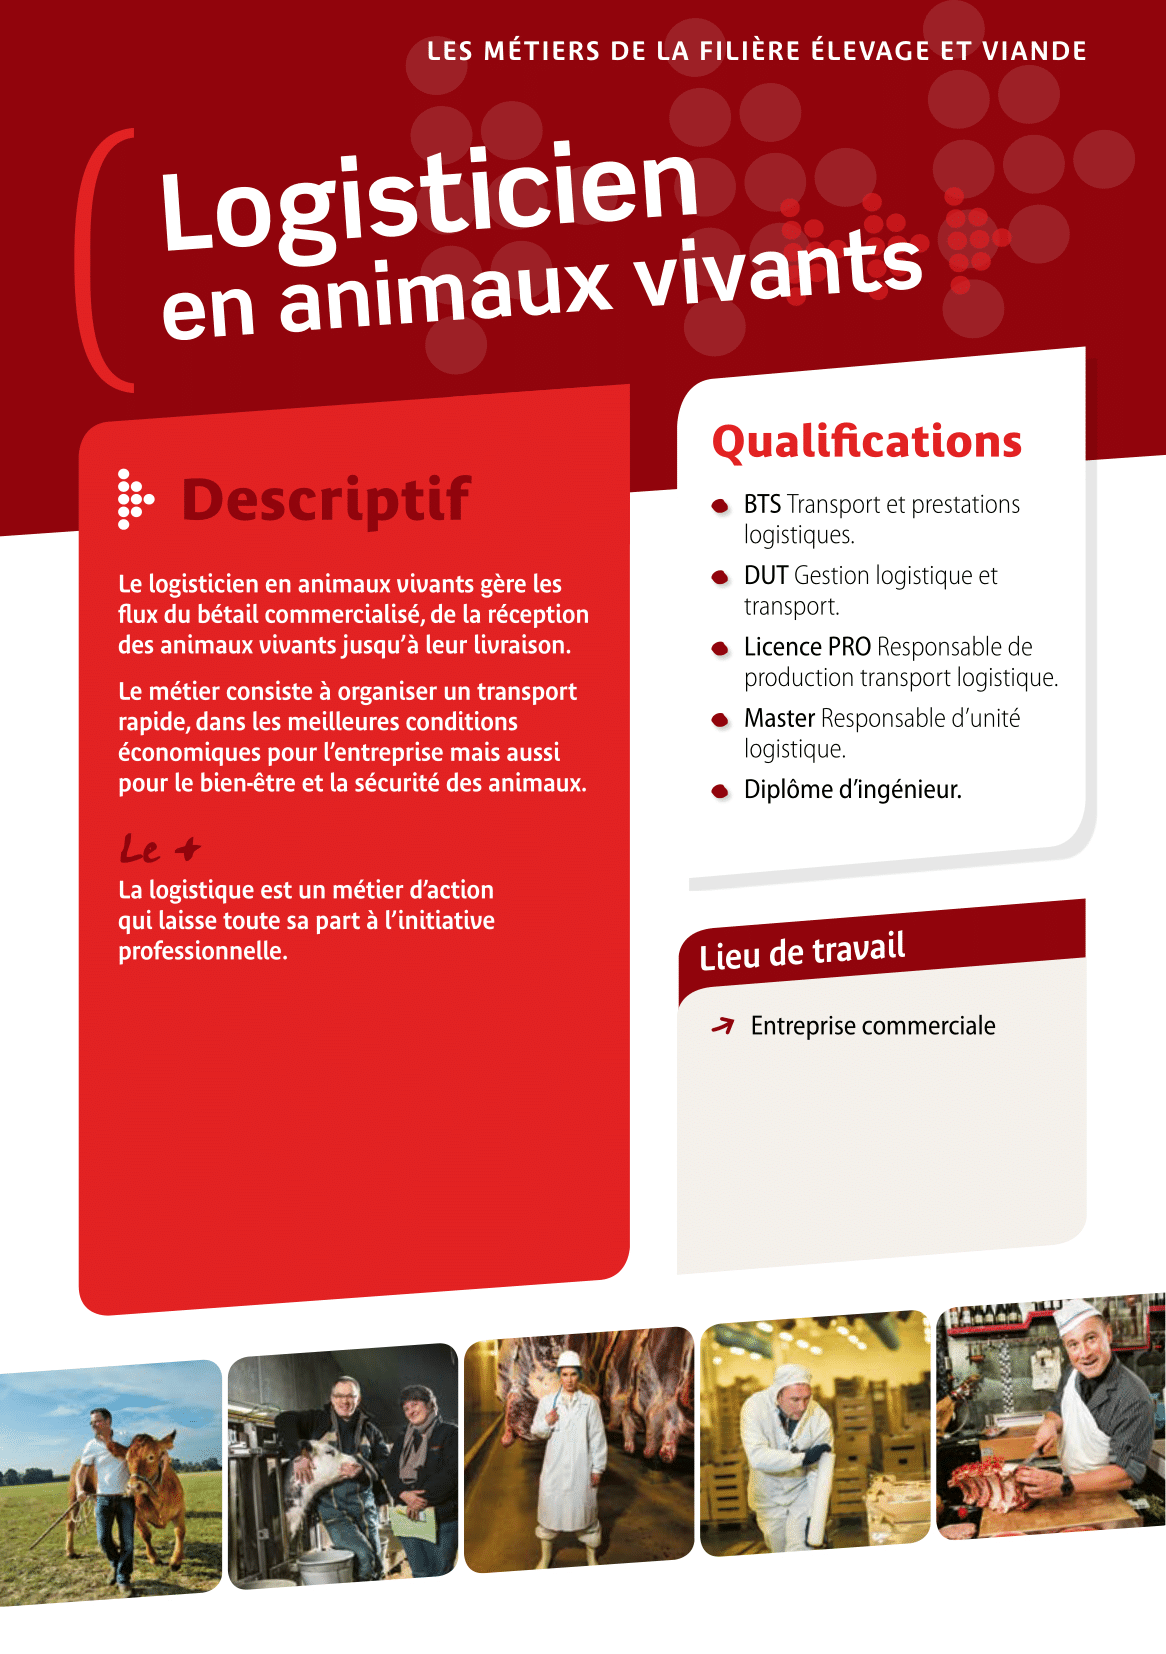 Logisticien en animaux vivants